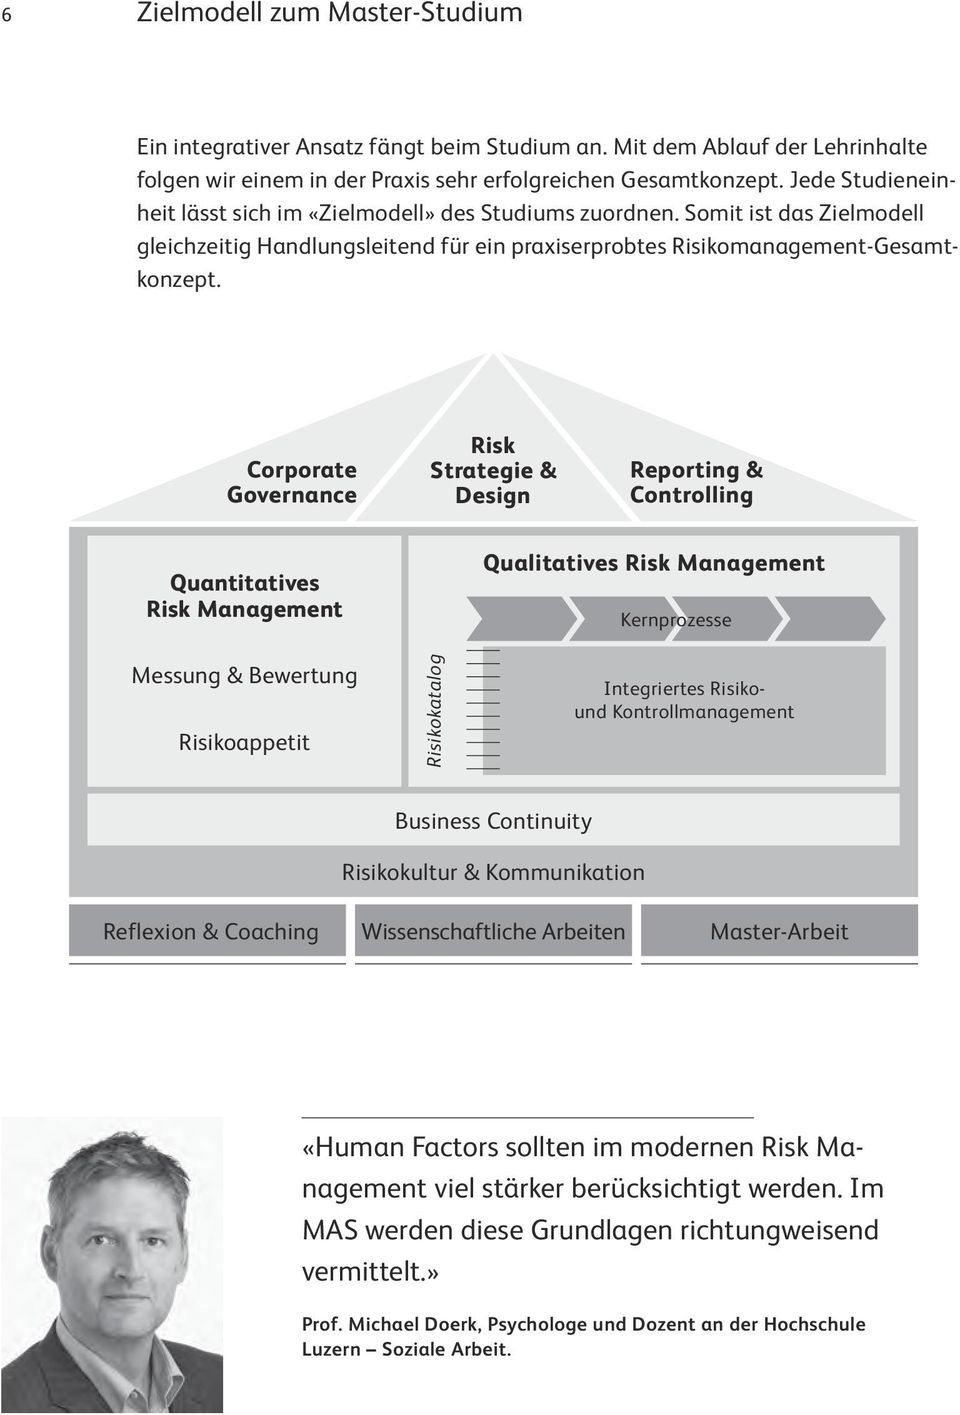 Corporate Governance Risk Strategie & Design Reporting & Controlling Quantitatives Risk Management Messung & Bewertung Risikoappetit Risikokatalog Qualitatives Risk Management Kernprozesse